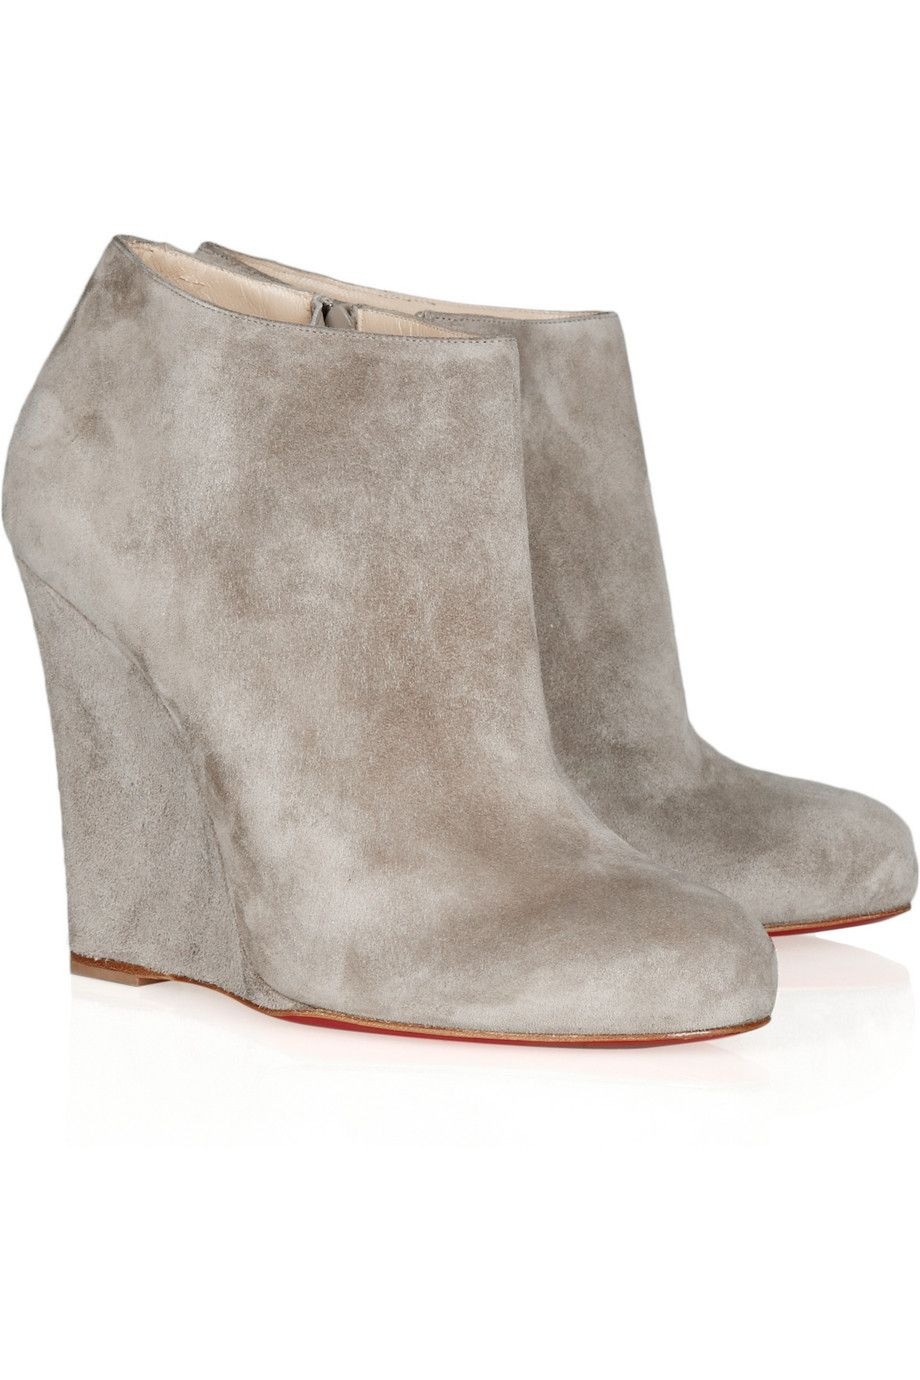 discount outlet locations Christian Louboutin Suede Wedge Booties sneakernews under $60 sale online buy cheap fashionable best prices online Qnow62crN